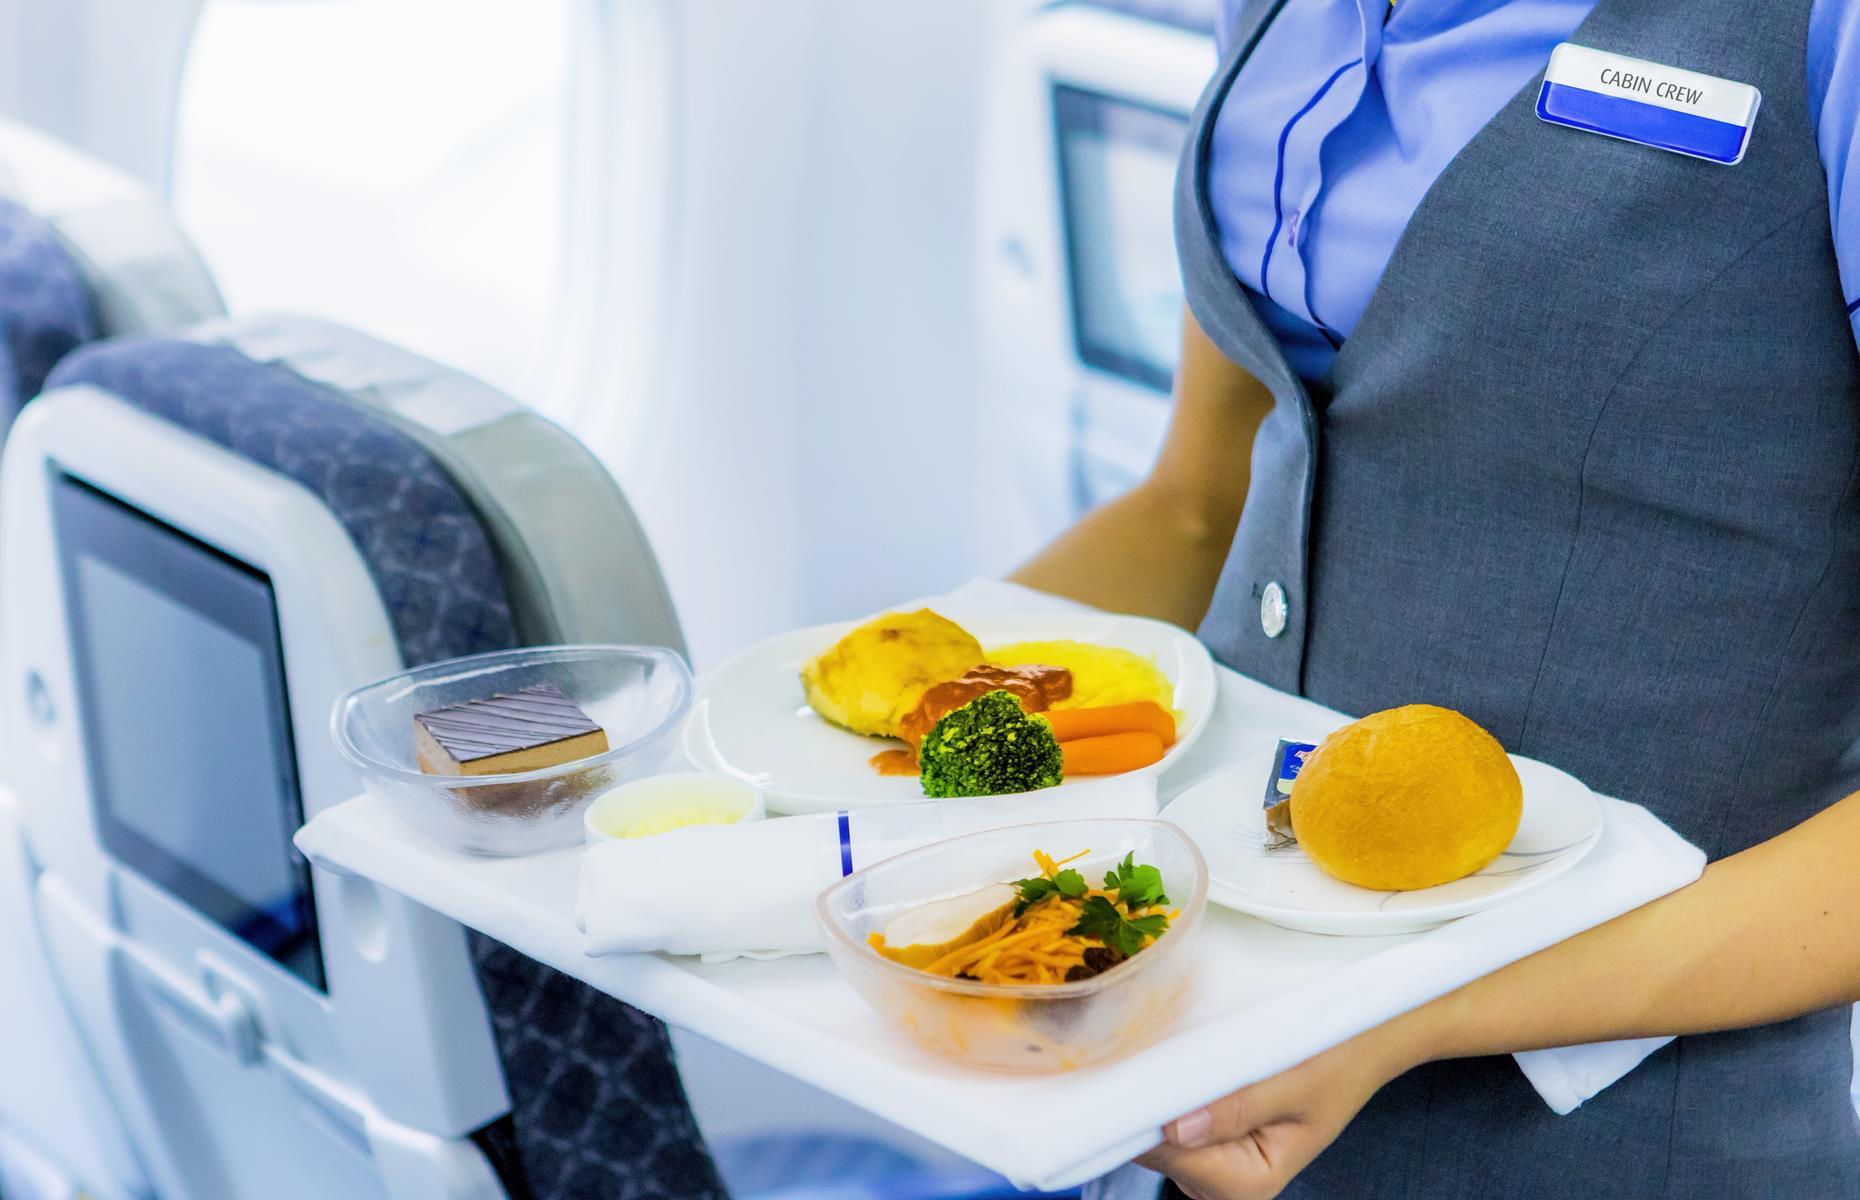 """Slide 34 of 63: """"With the exception of a few 5-star international airlines, we don't actually cook on board,"""" says Leandi. """"The meals are prepared a couple of days in advance and packaged. That's why if you have a special dietary requirement, we ask that you tell us about it 48 hours in advance. Then when we get on board, we just pop the meals in the oven and heat them for 30 minutes before serving them to you on the meal trays."""""""